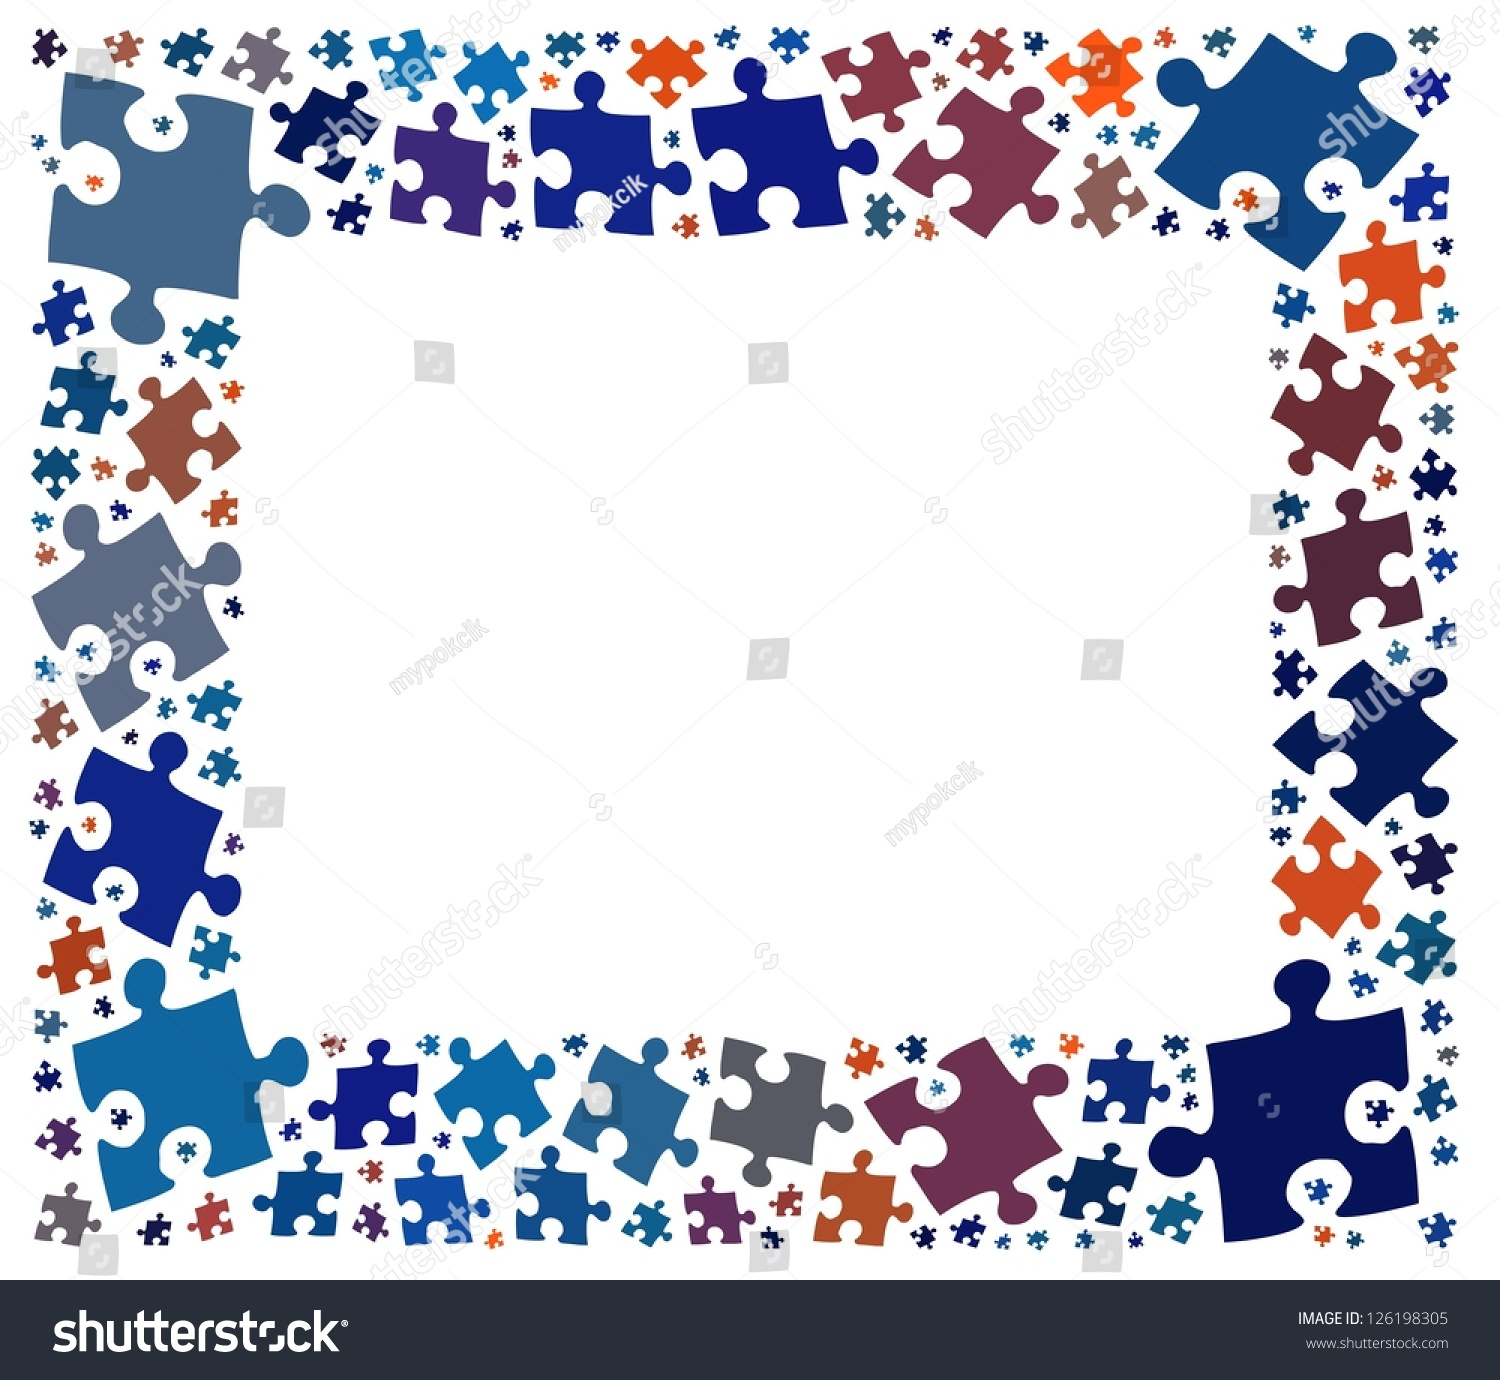 jigsaw puzzle frame copy space for text stock photo 126198305 shutterstock. Black Bedroom Furniture Sets. Home Design Ideas